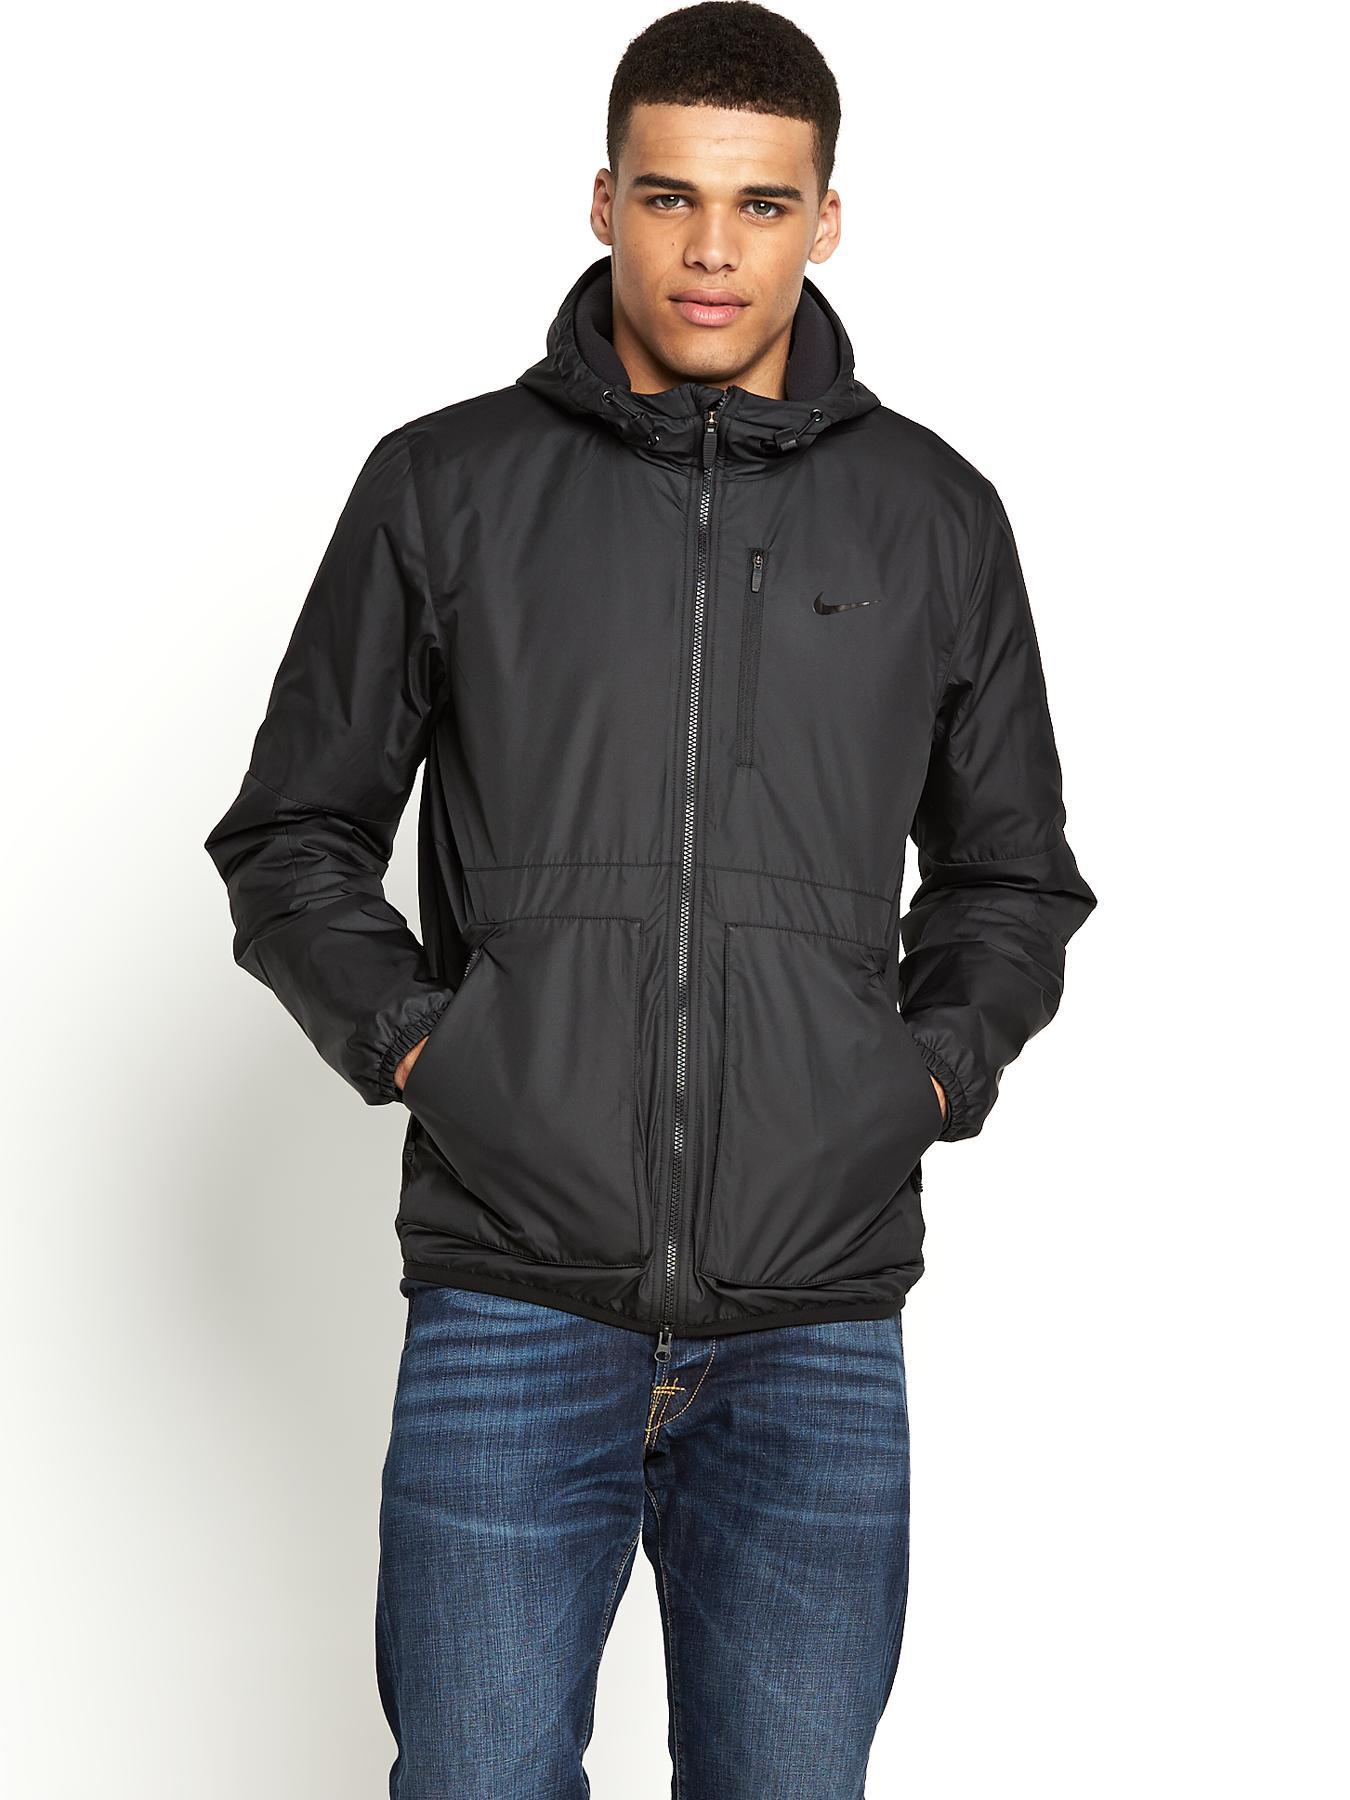 Nike epic jacket - Nike Quilted Jackets Dovalina Builders